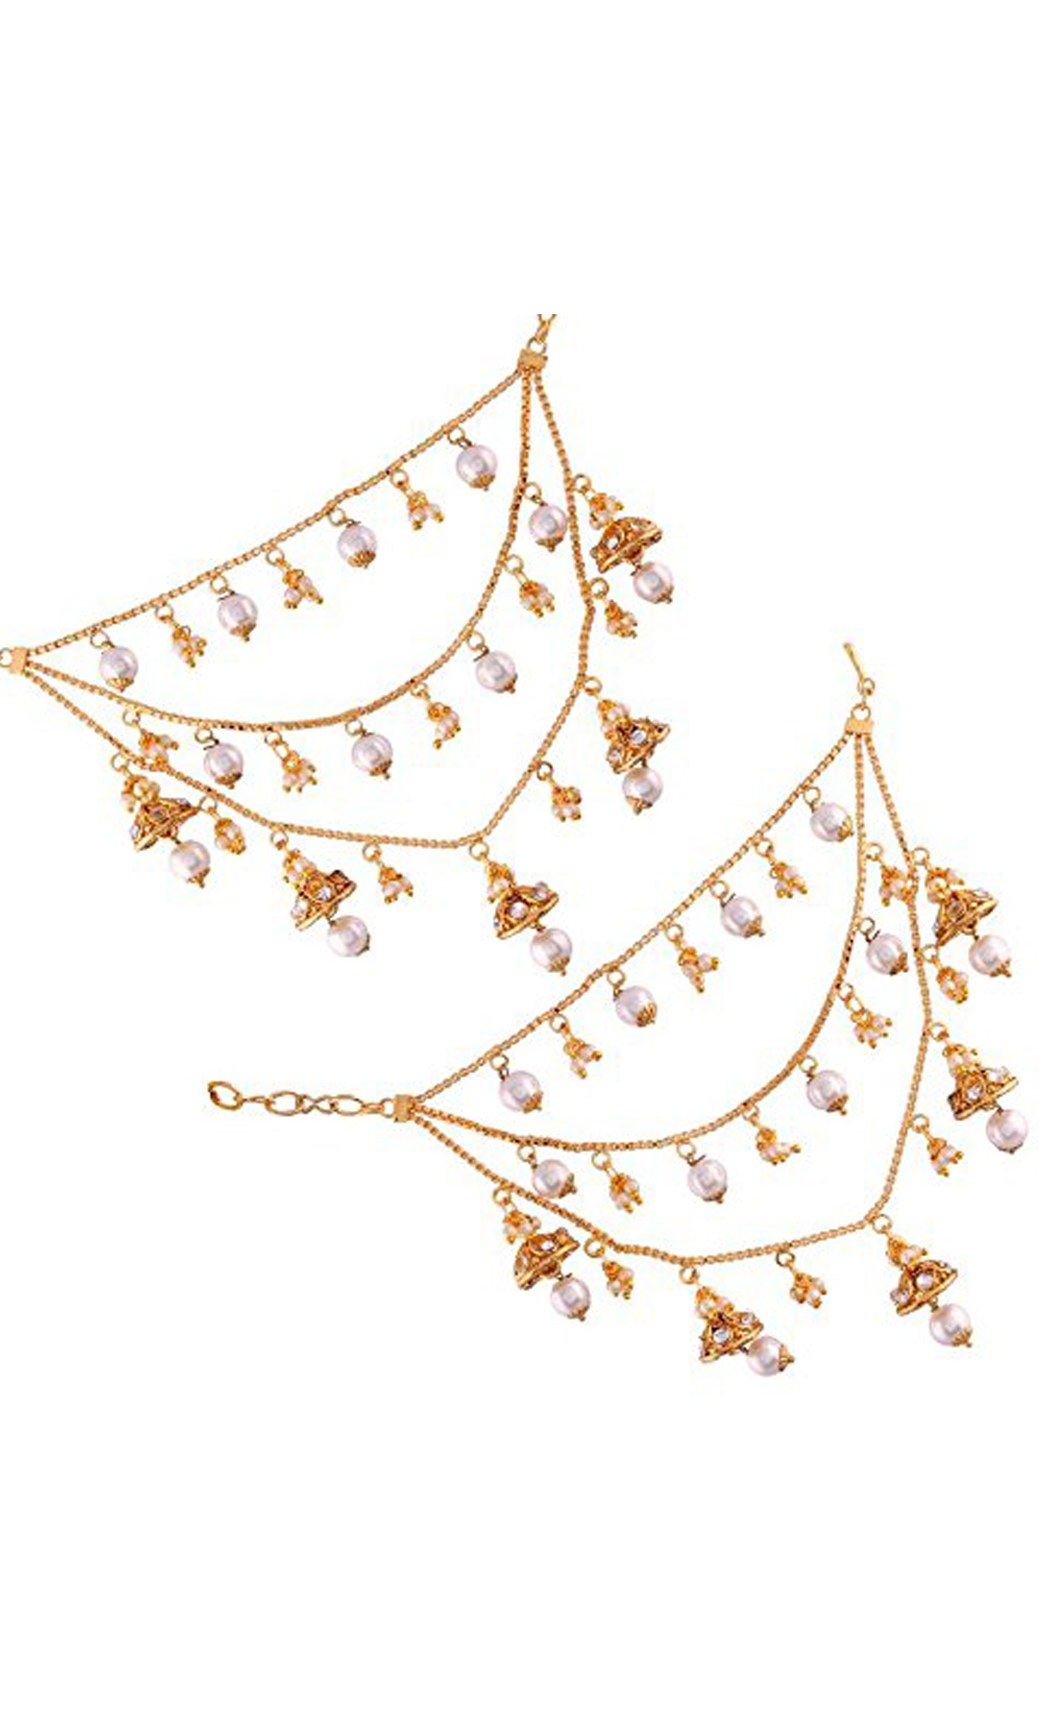 Gold Plated Triple Line Earring Chains with Pearls | Wedding Earrings | Buy Online